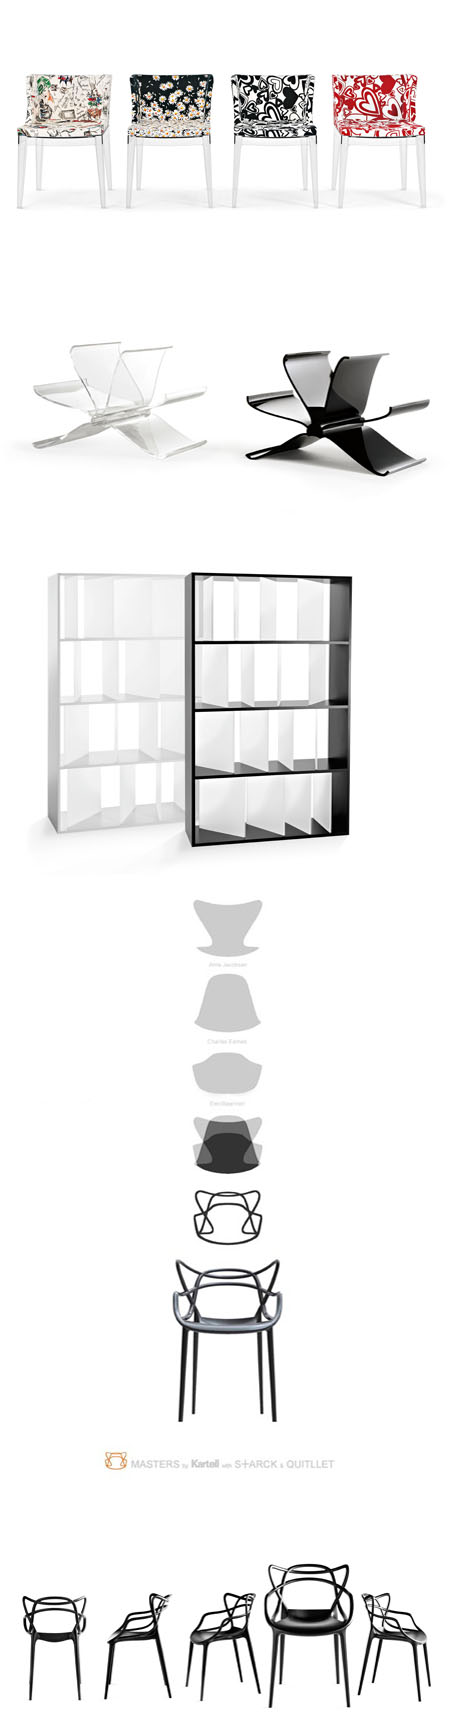 New collection Kartell design